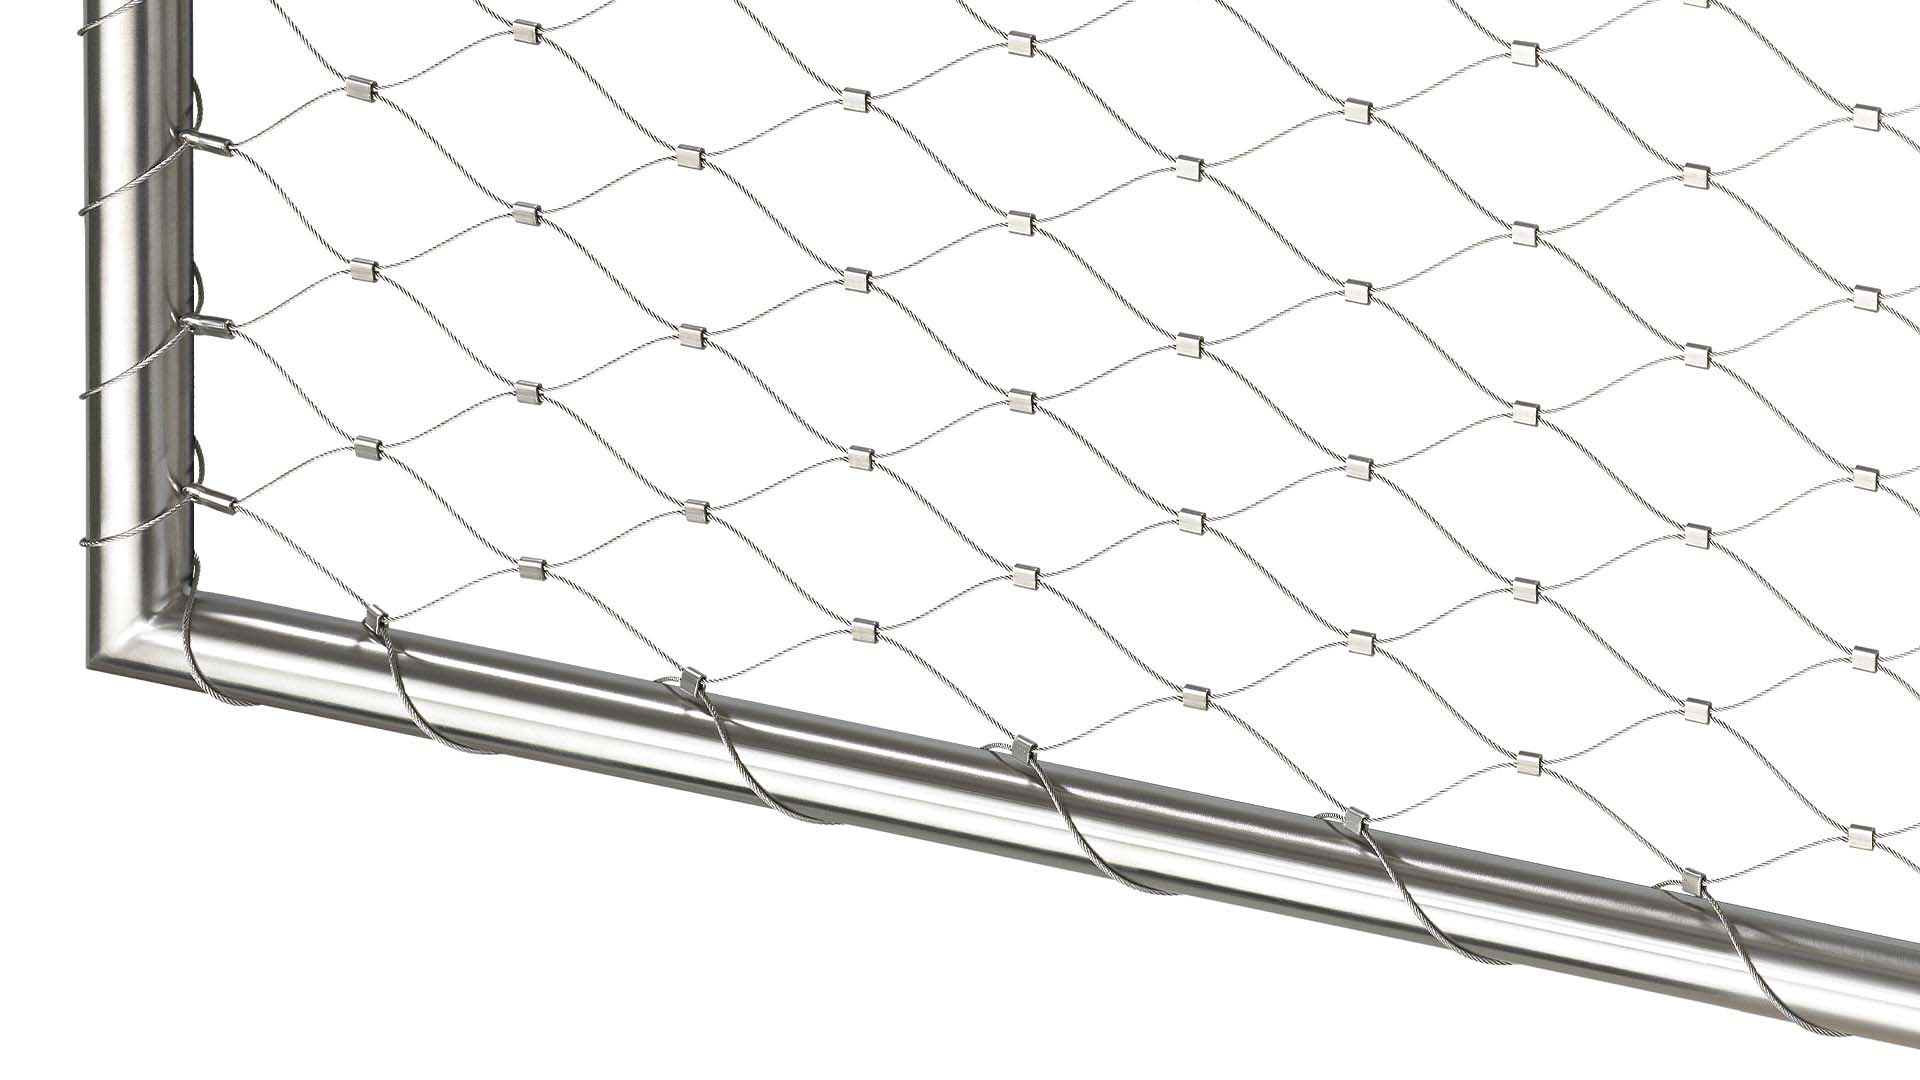 Balustrades for balconies and terraces with stainless steel nets